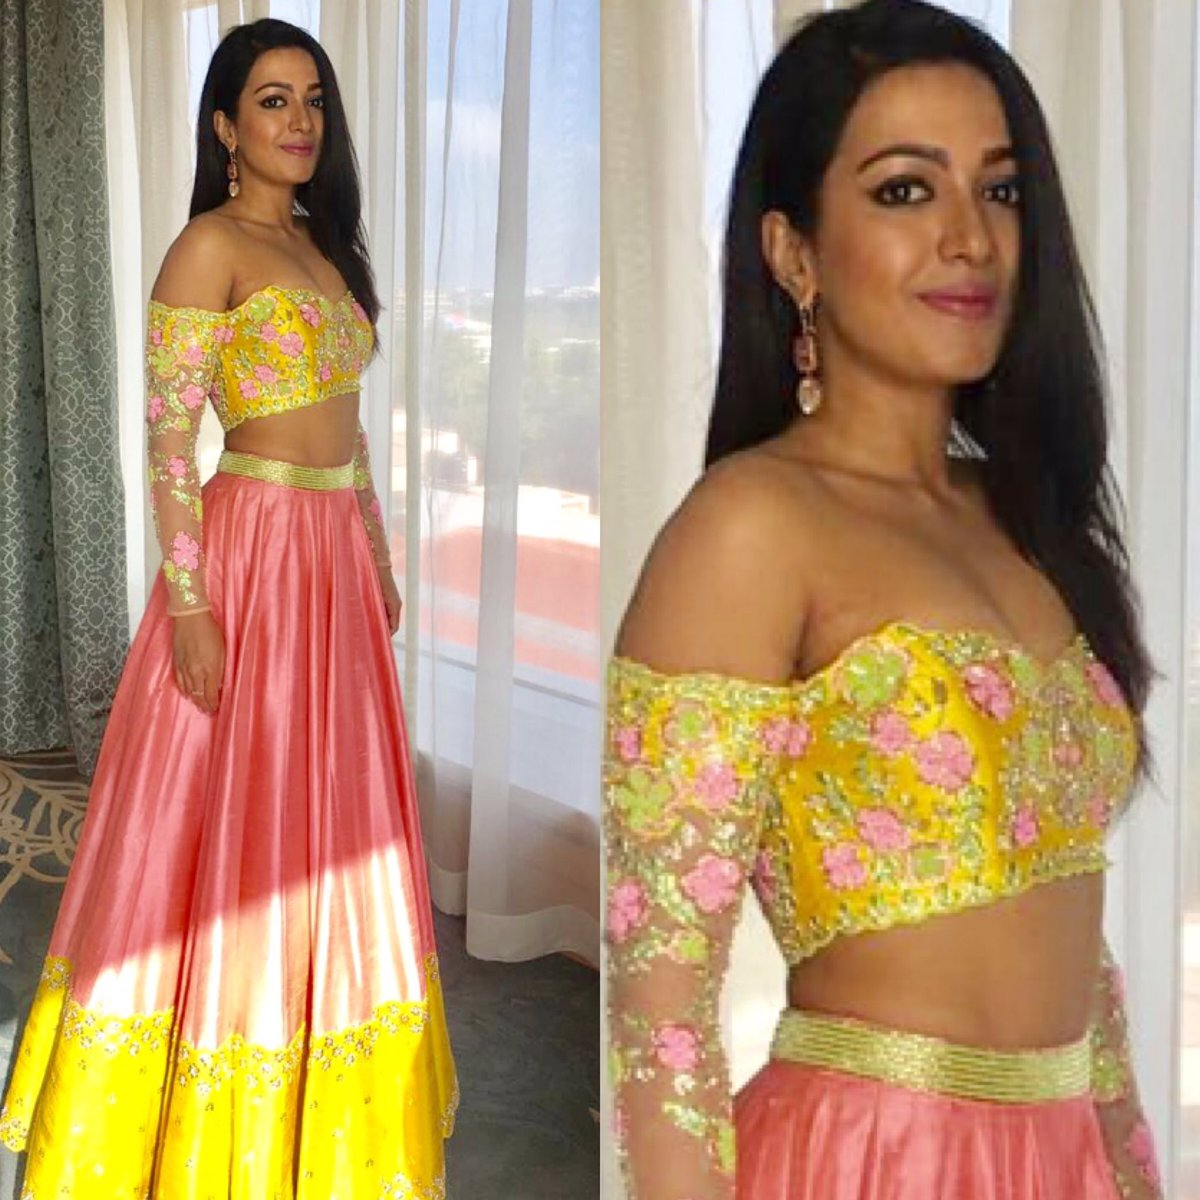 Super HOT Actress Catherine Tresa Sizzles In Stunning Outfit | Beautiful Indian Actresses  super hot actress catherine tresa sizzles in stunning outfit Super HOT Actress Catherine Tresa Sizzles In Stunning Outfit 1501960844 681 super hot actress catherine tresa sizzles in stunning outfit